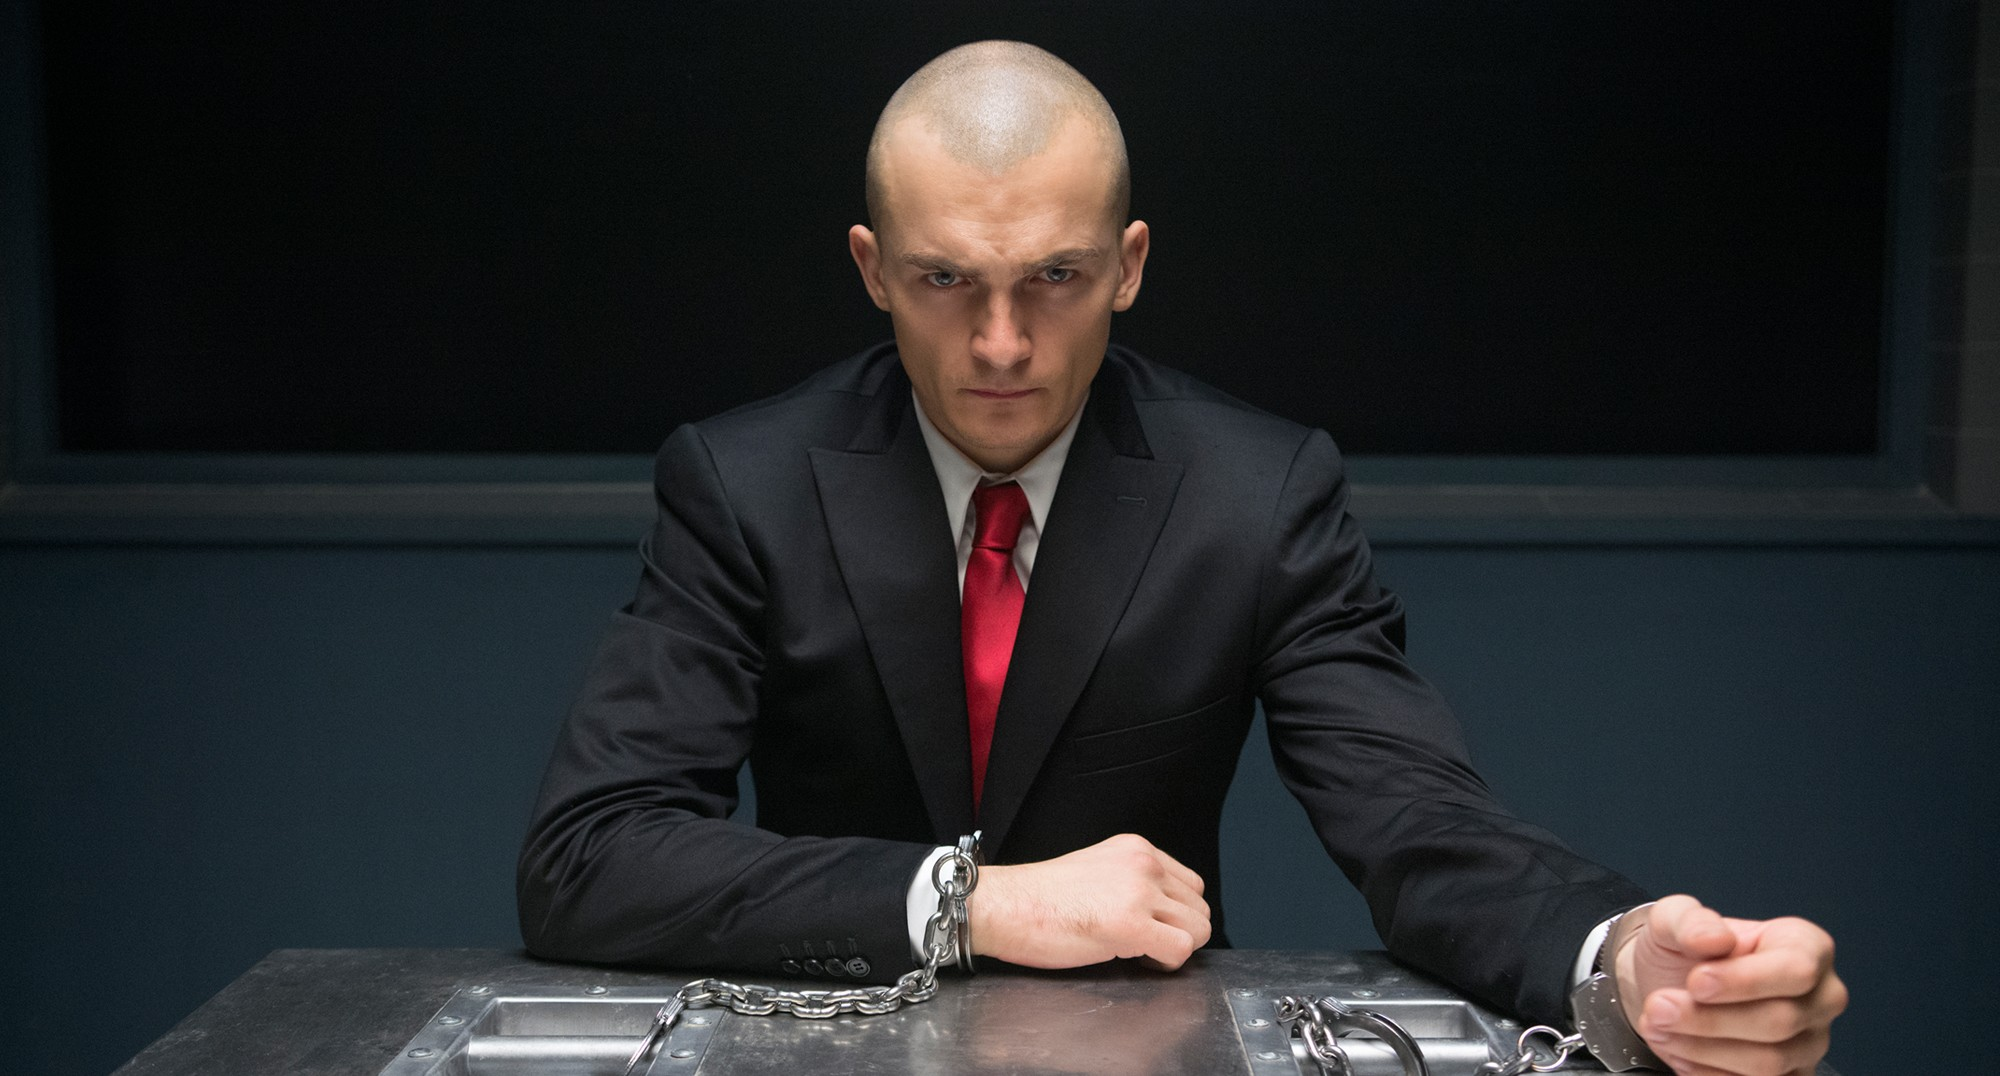 Hitman Agent 47 Wallpaper 1 Wallpapersbq